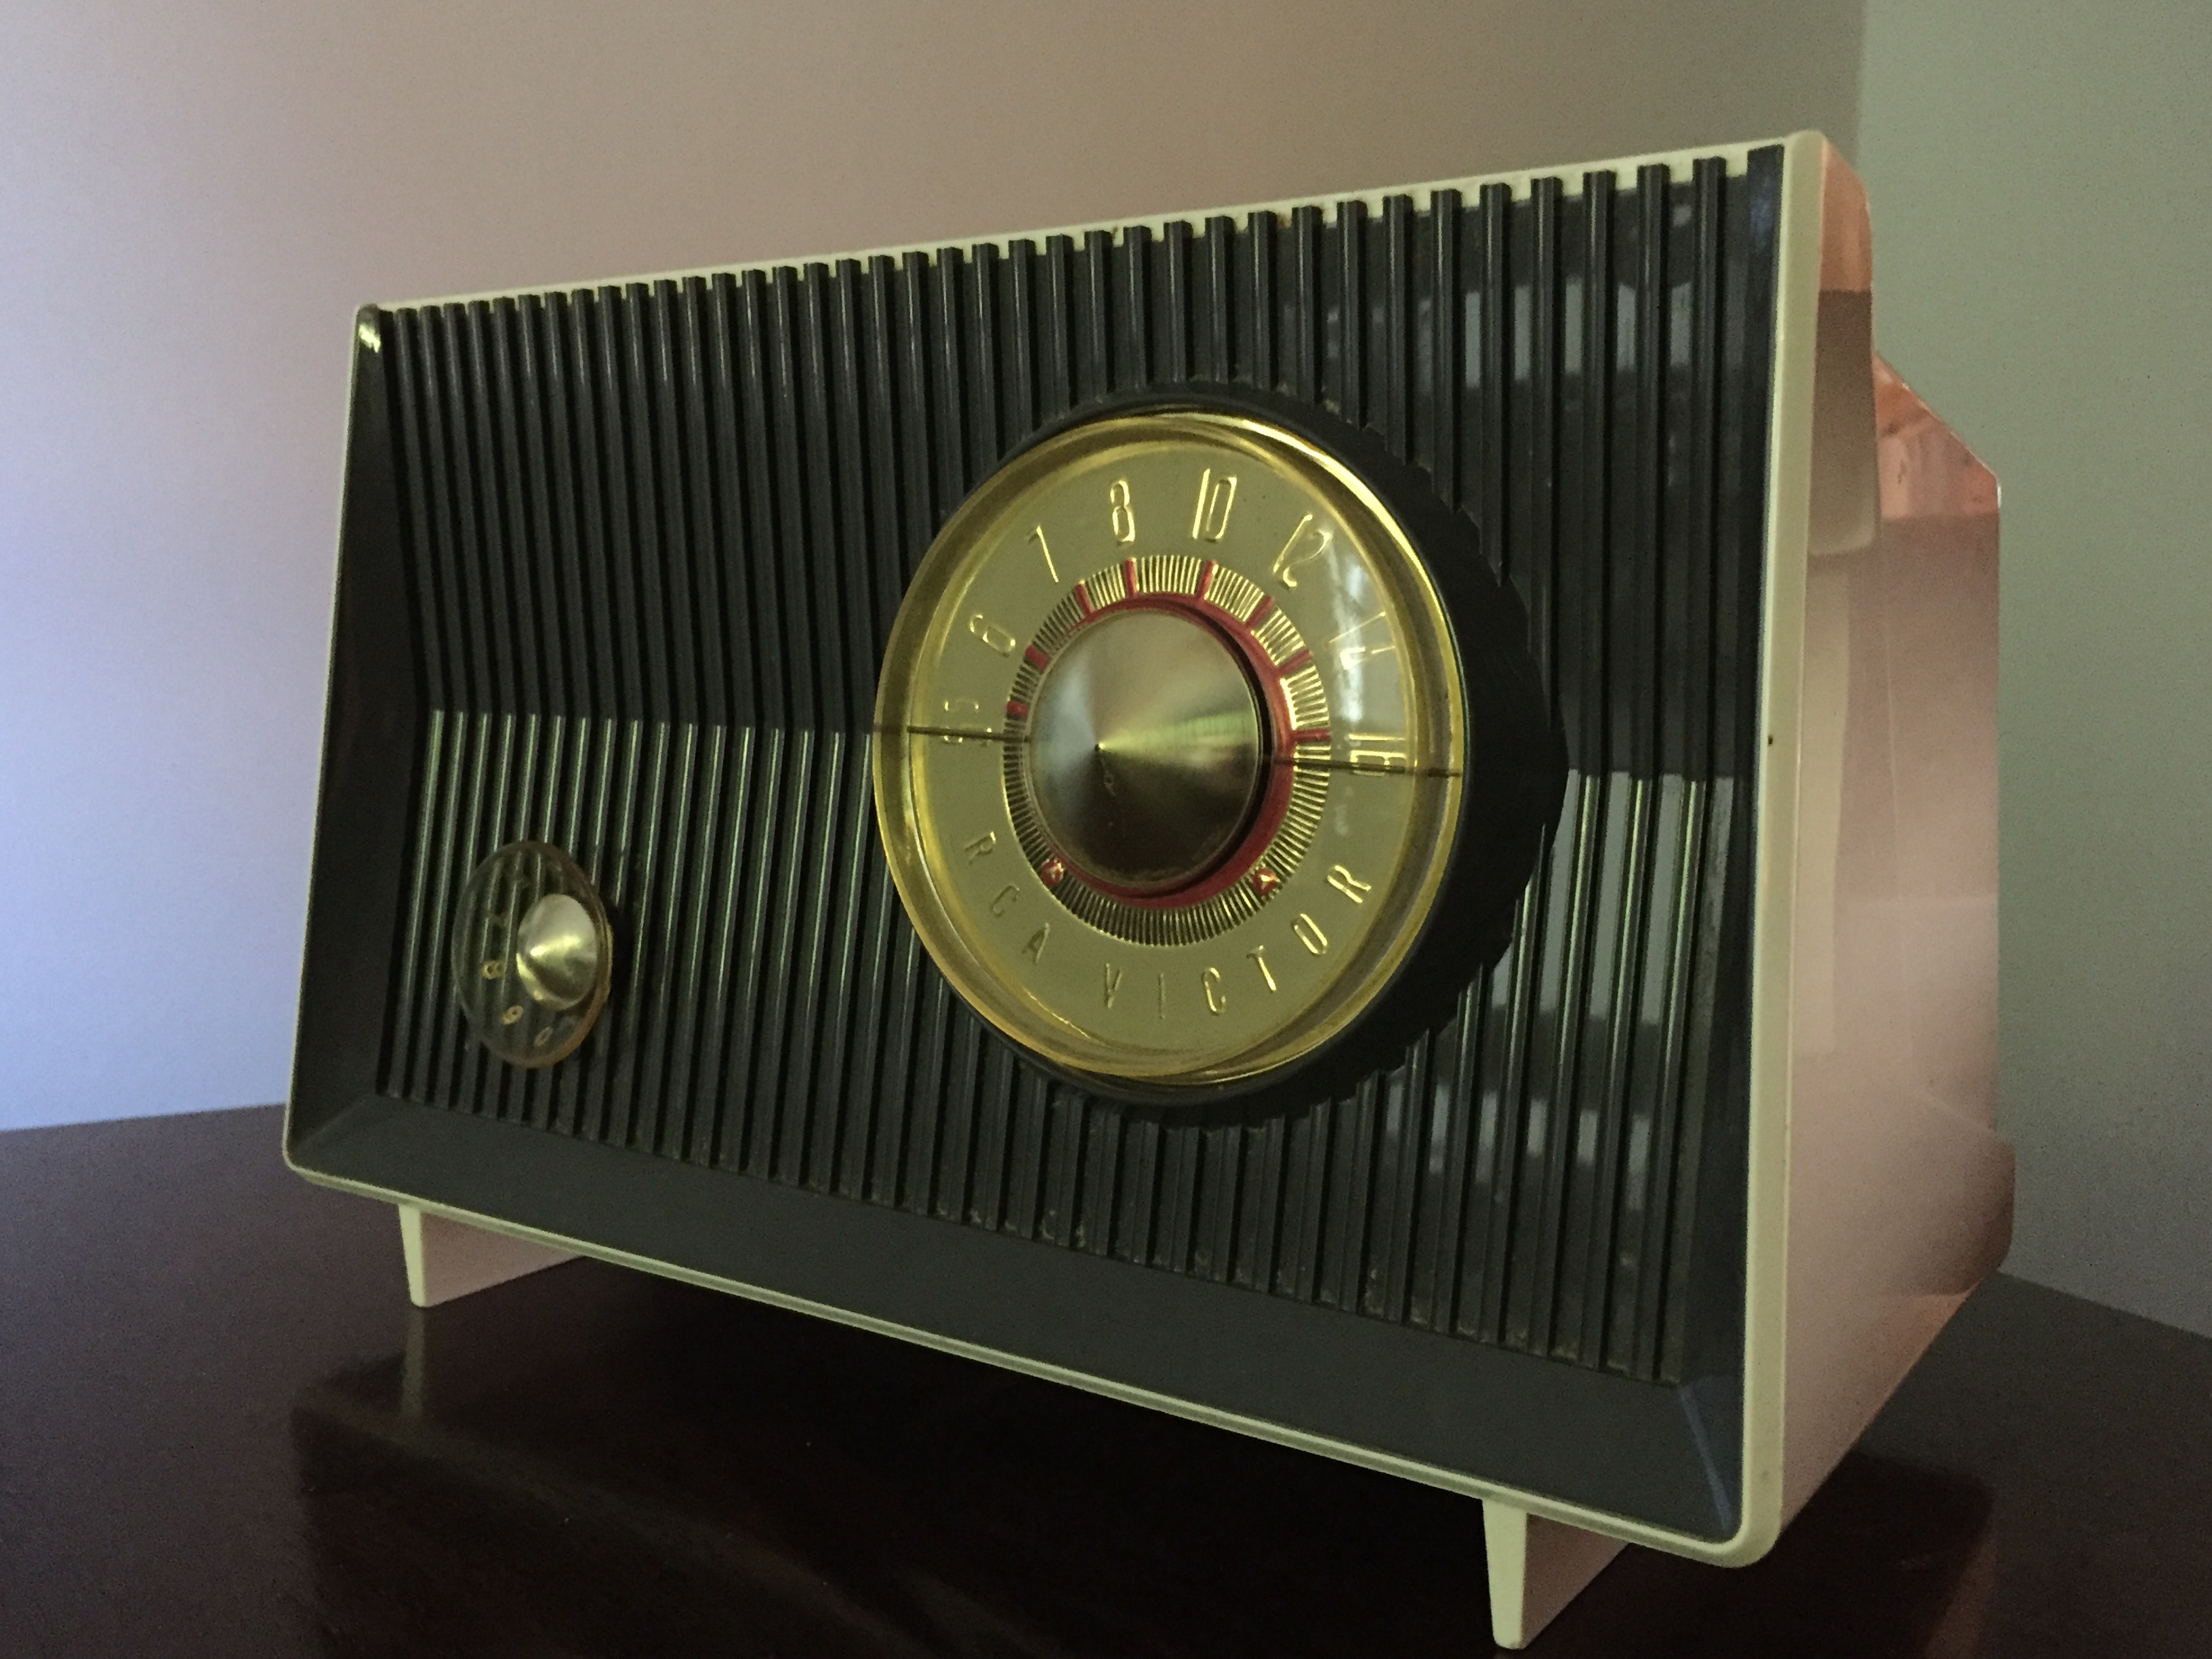 Space Age Cool.  This RCA Victor AM radio, model X-2JE, was produced in 1959.  (Photo by J. Schafer)